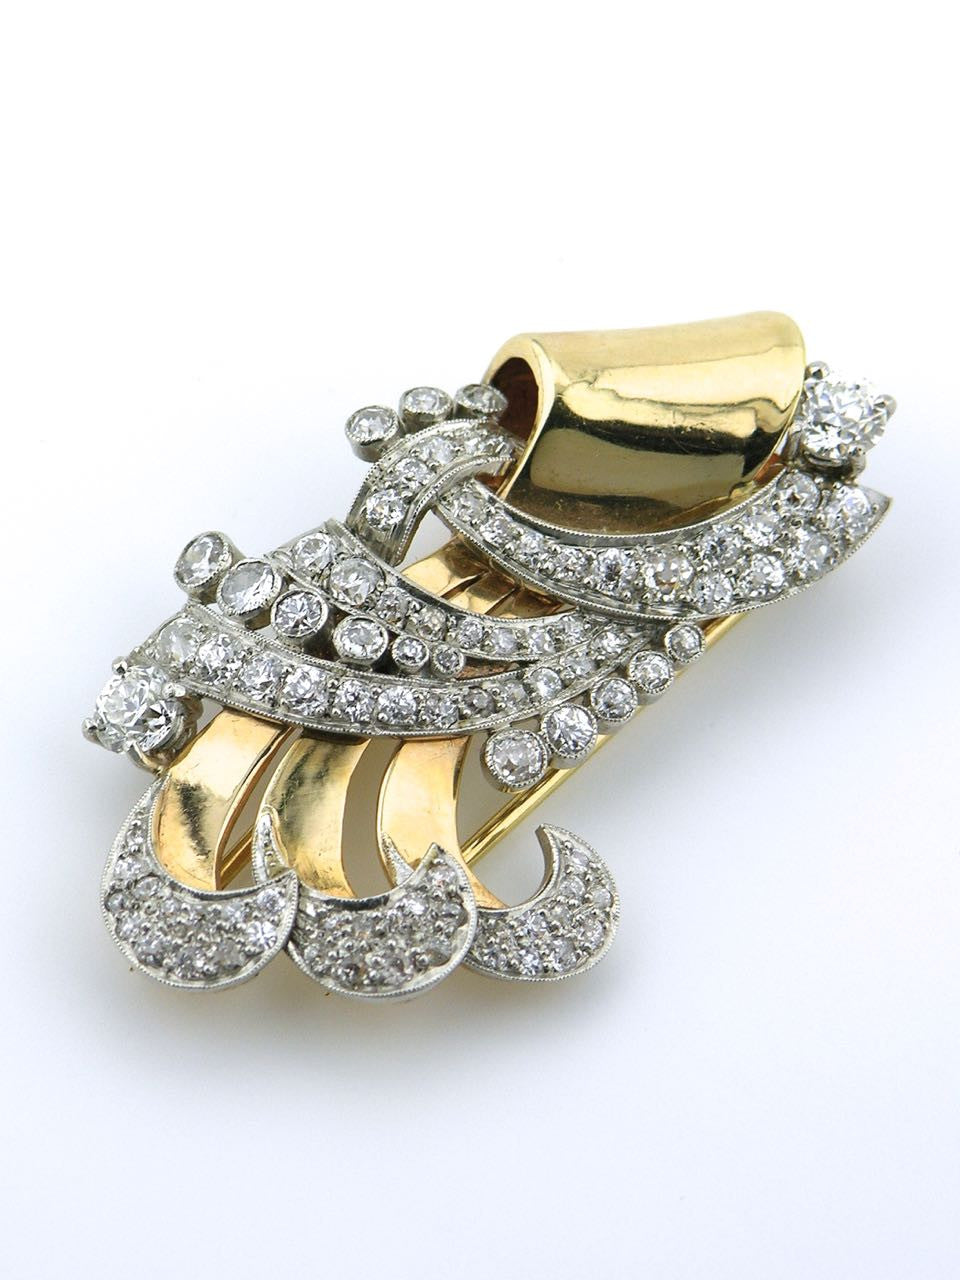 1940s American Retro Diamond Brooch